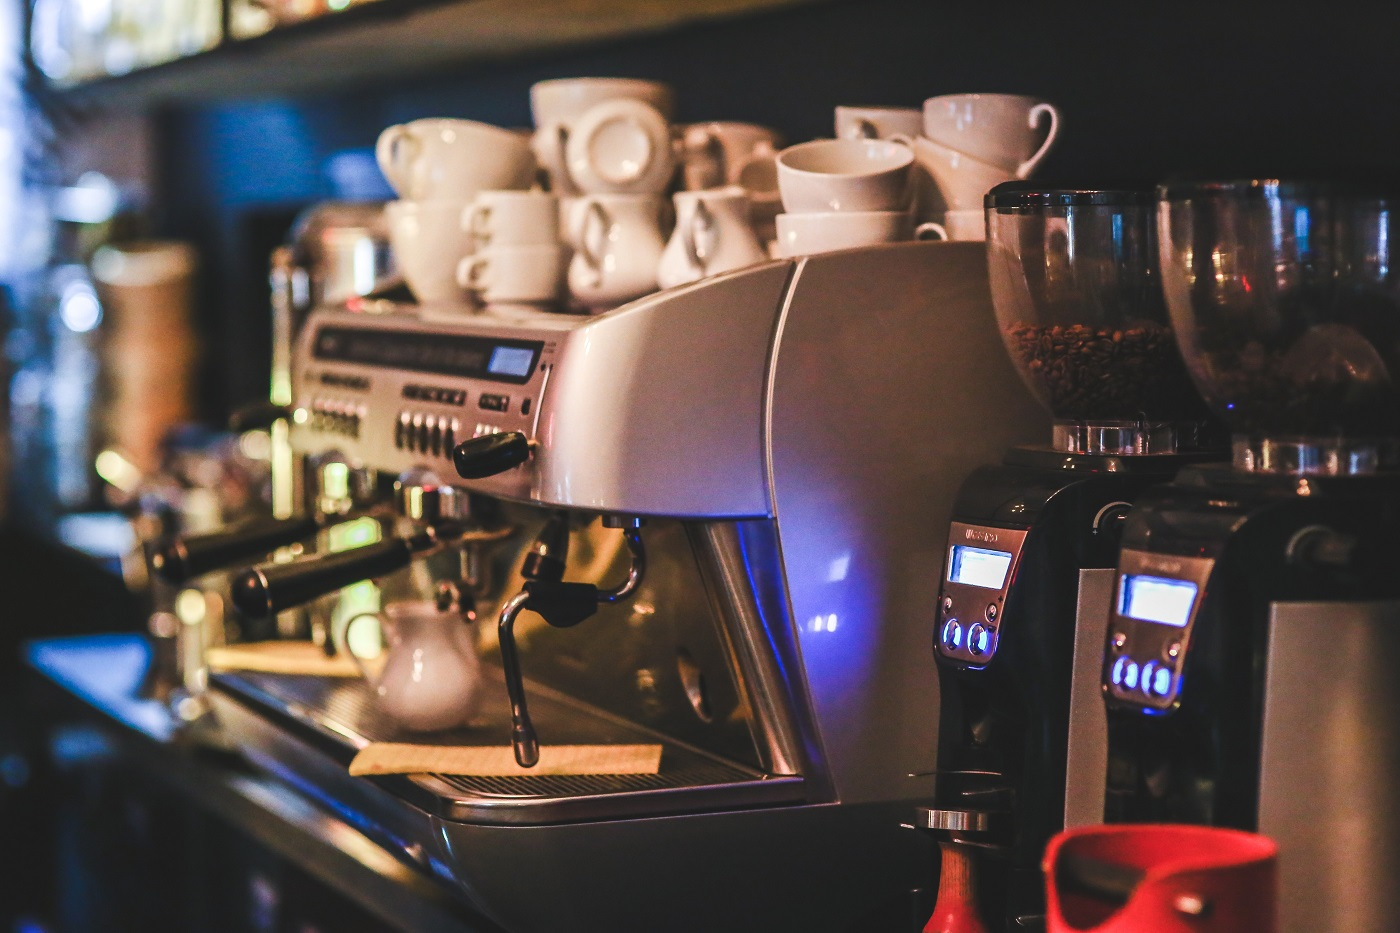 An in-depth review of the best espresso machines available in 2018.